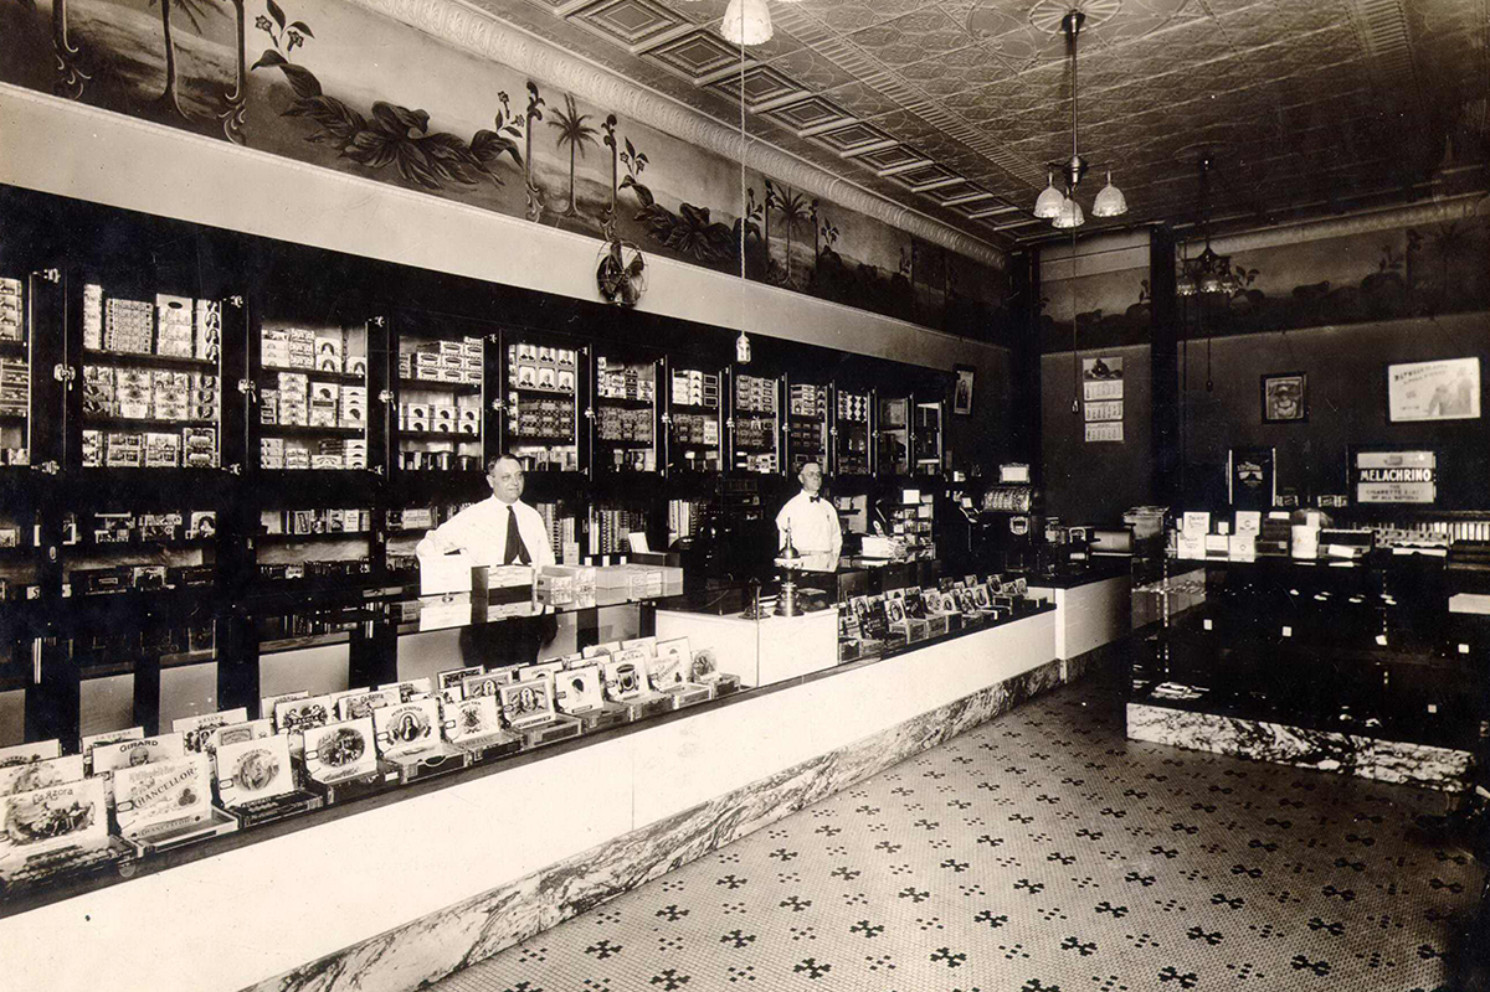 Ritter Cigar Factory - Erie County Ohio Historical Society